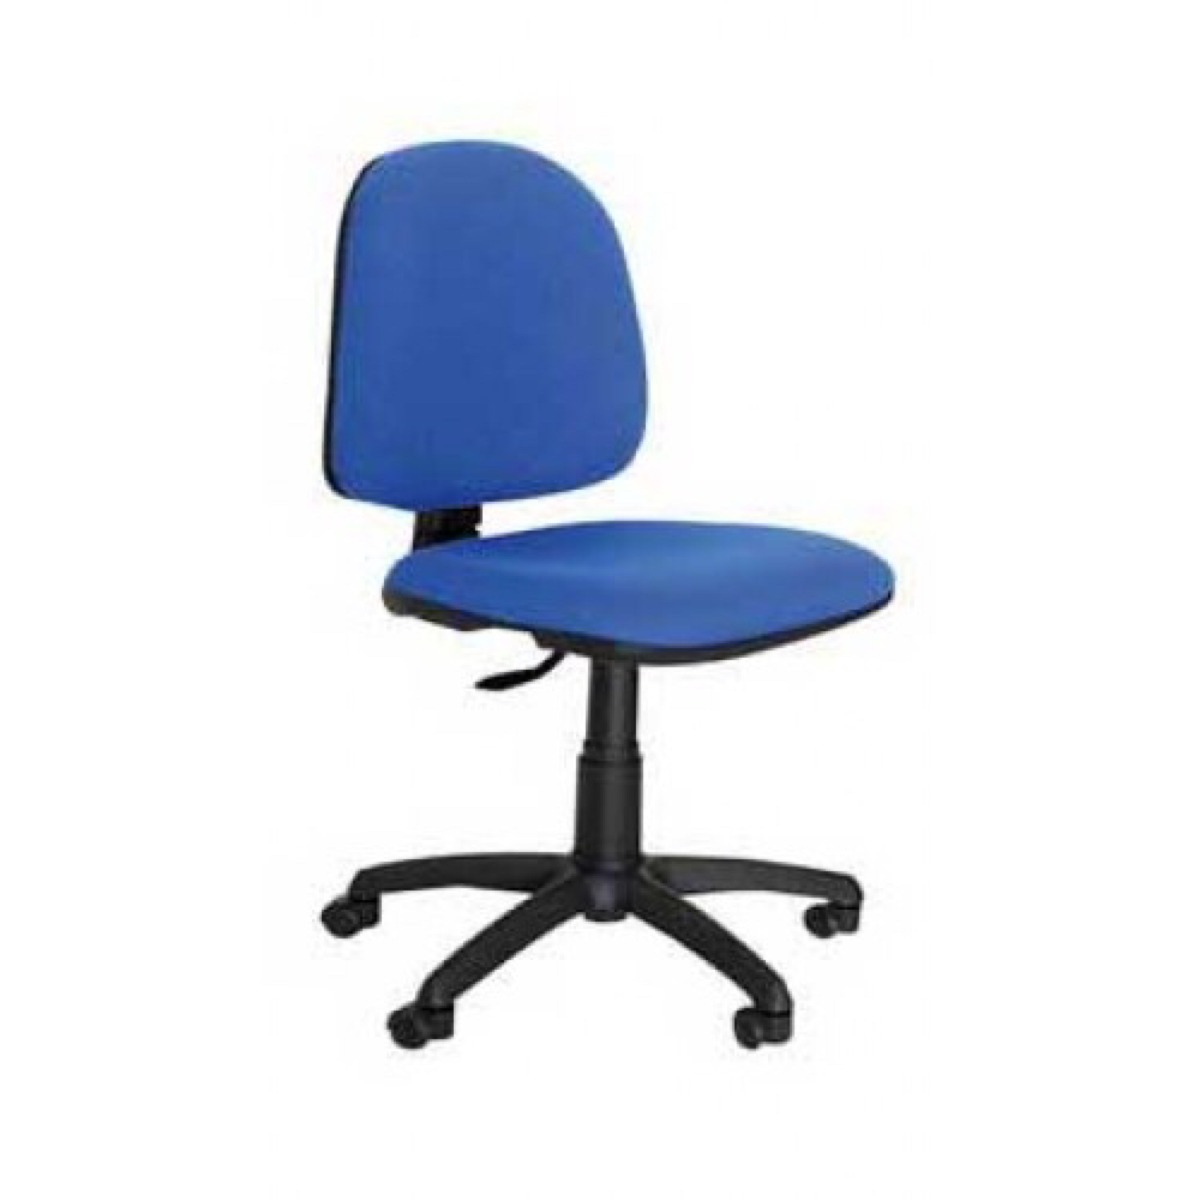 Sillas Ergonomicas Para Pc Silla Ergonómica Para Pc Con Ruedas Altura Regulable 950 00